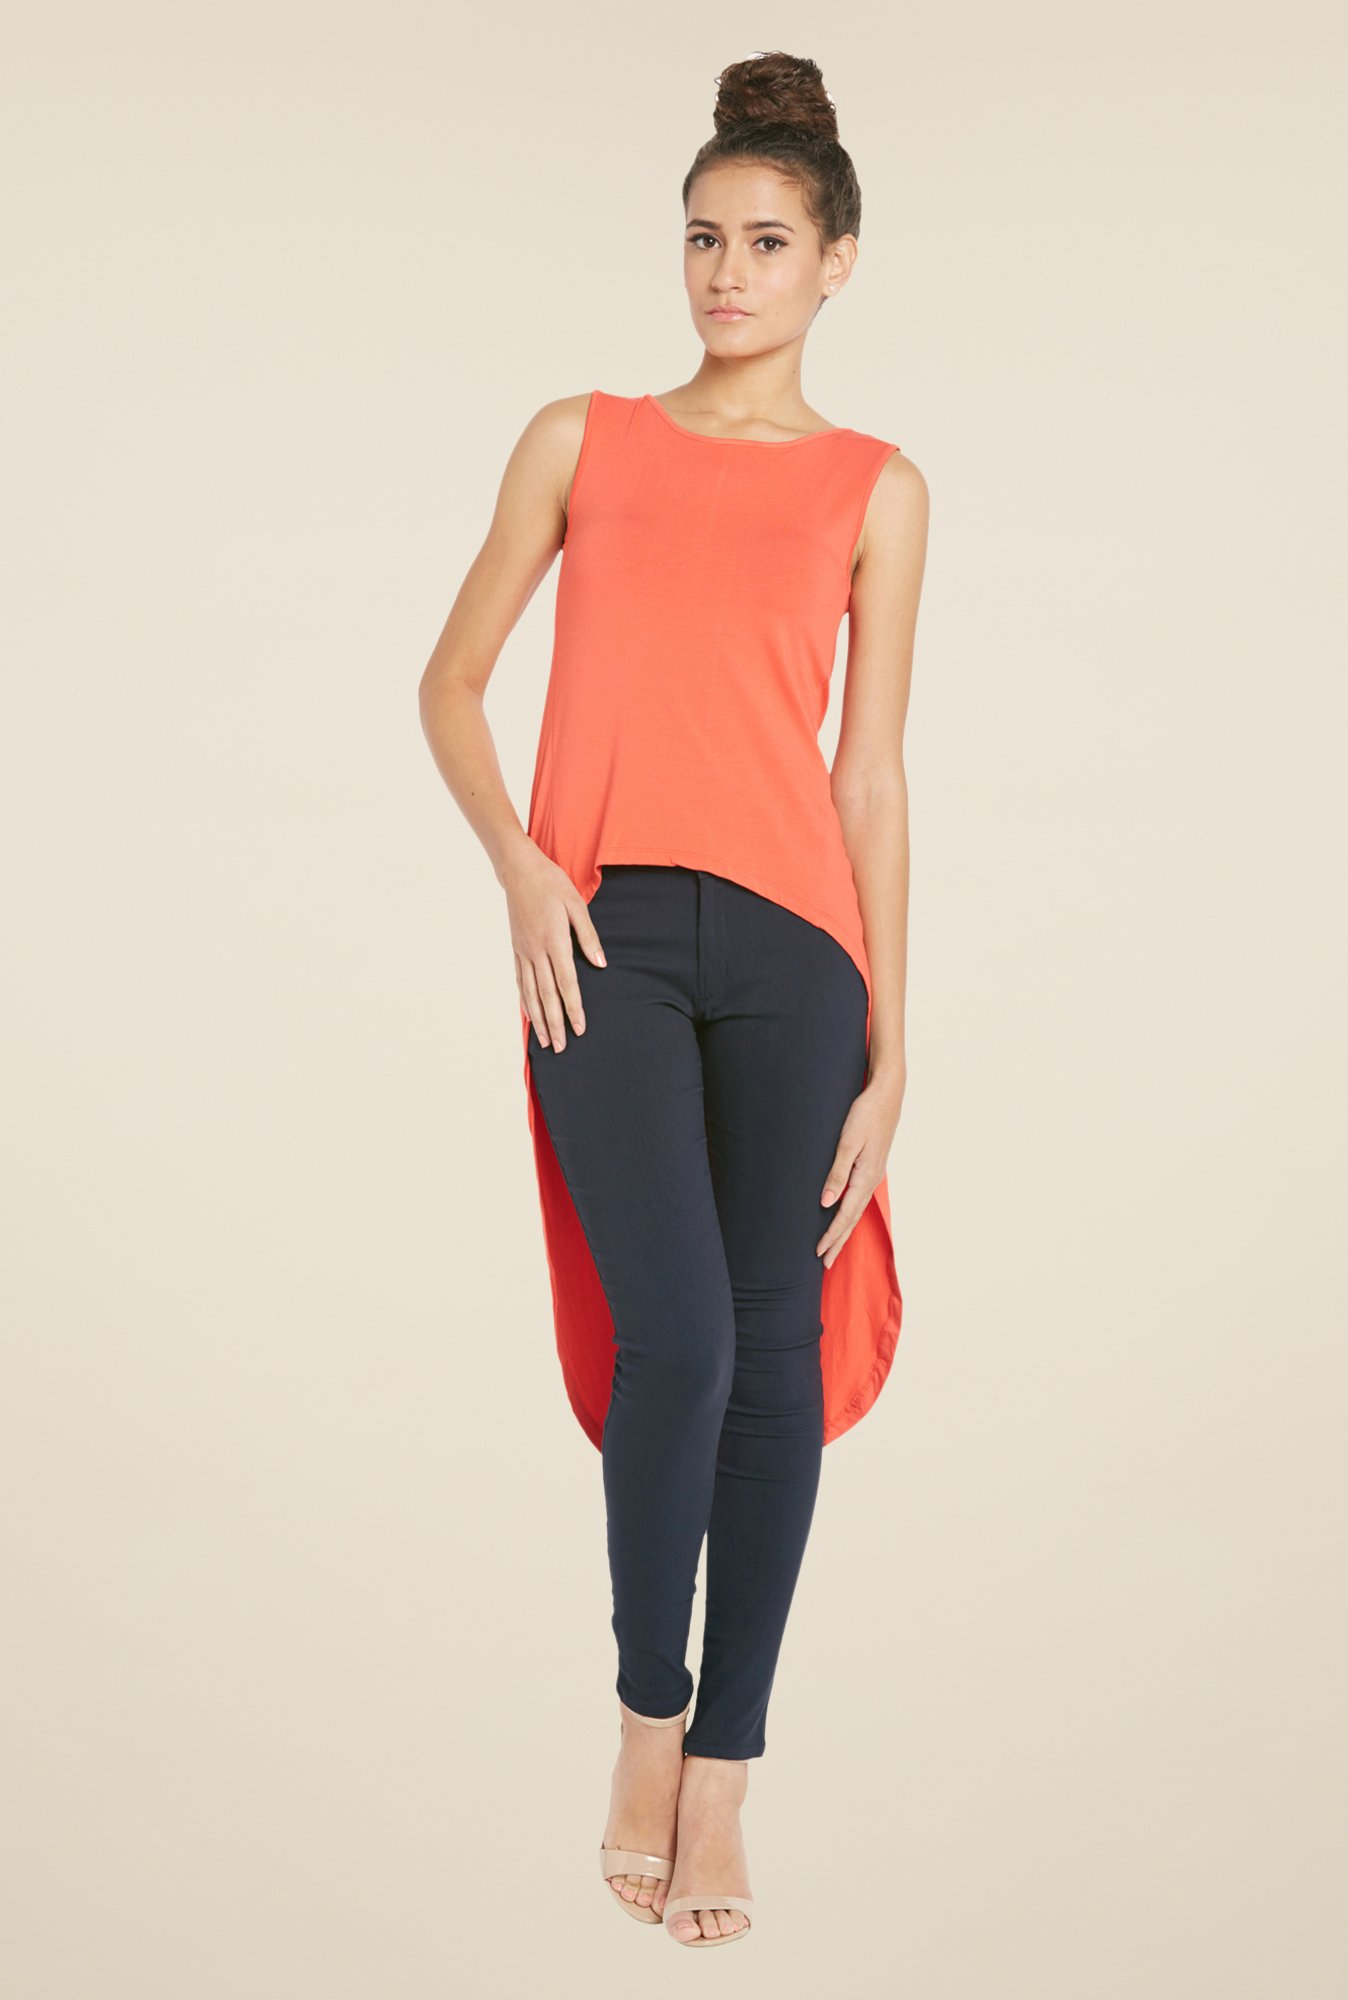 Globus Coral Solid Round Neck Top